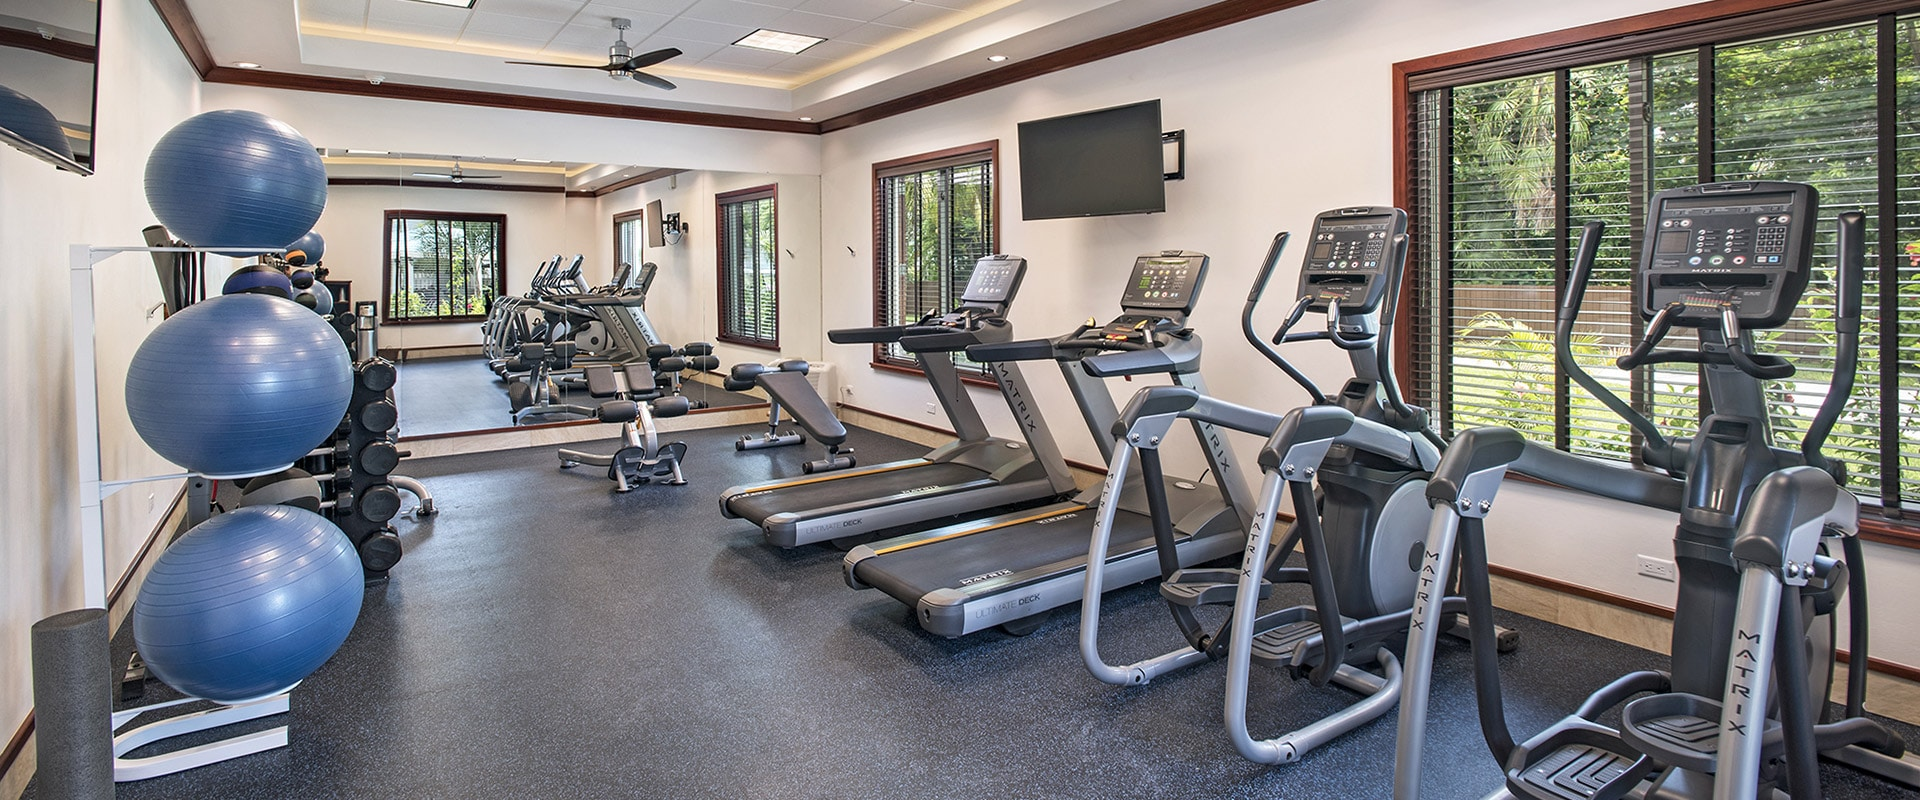 Fitness centre at Victoria House Resort and Spa, Belize